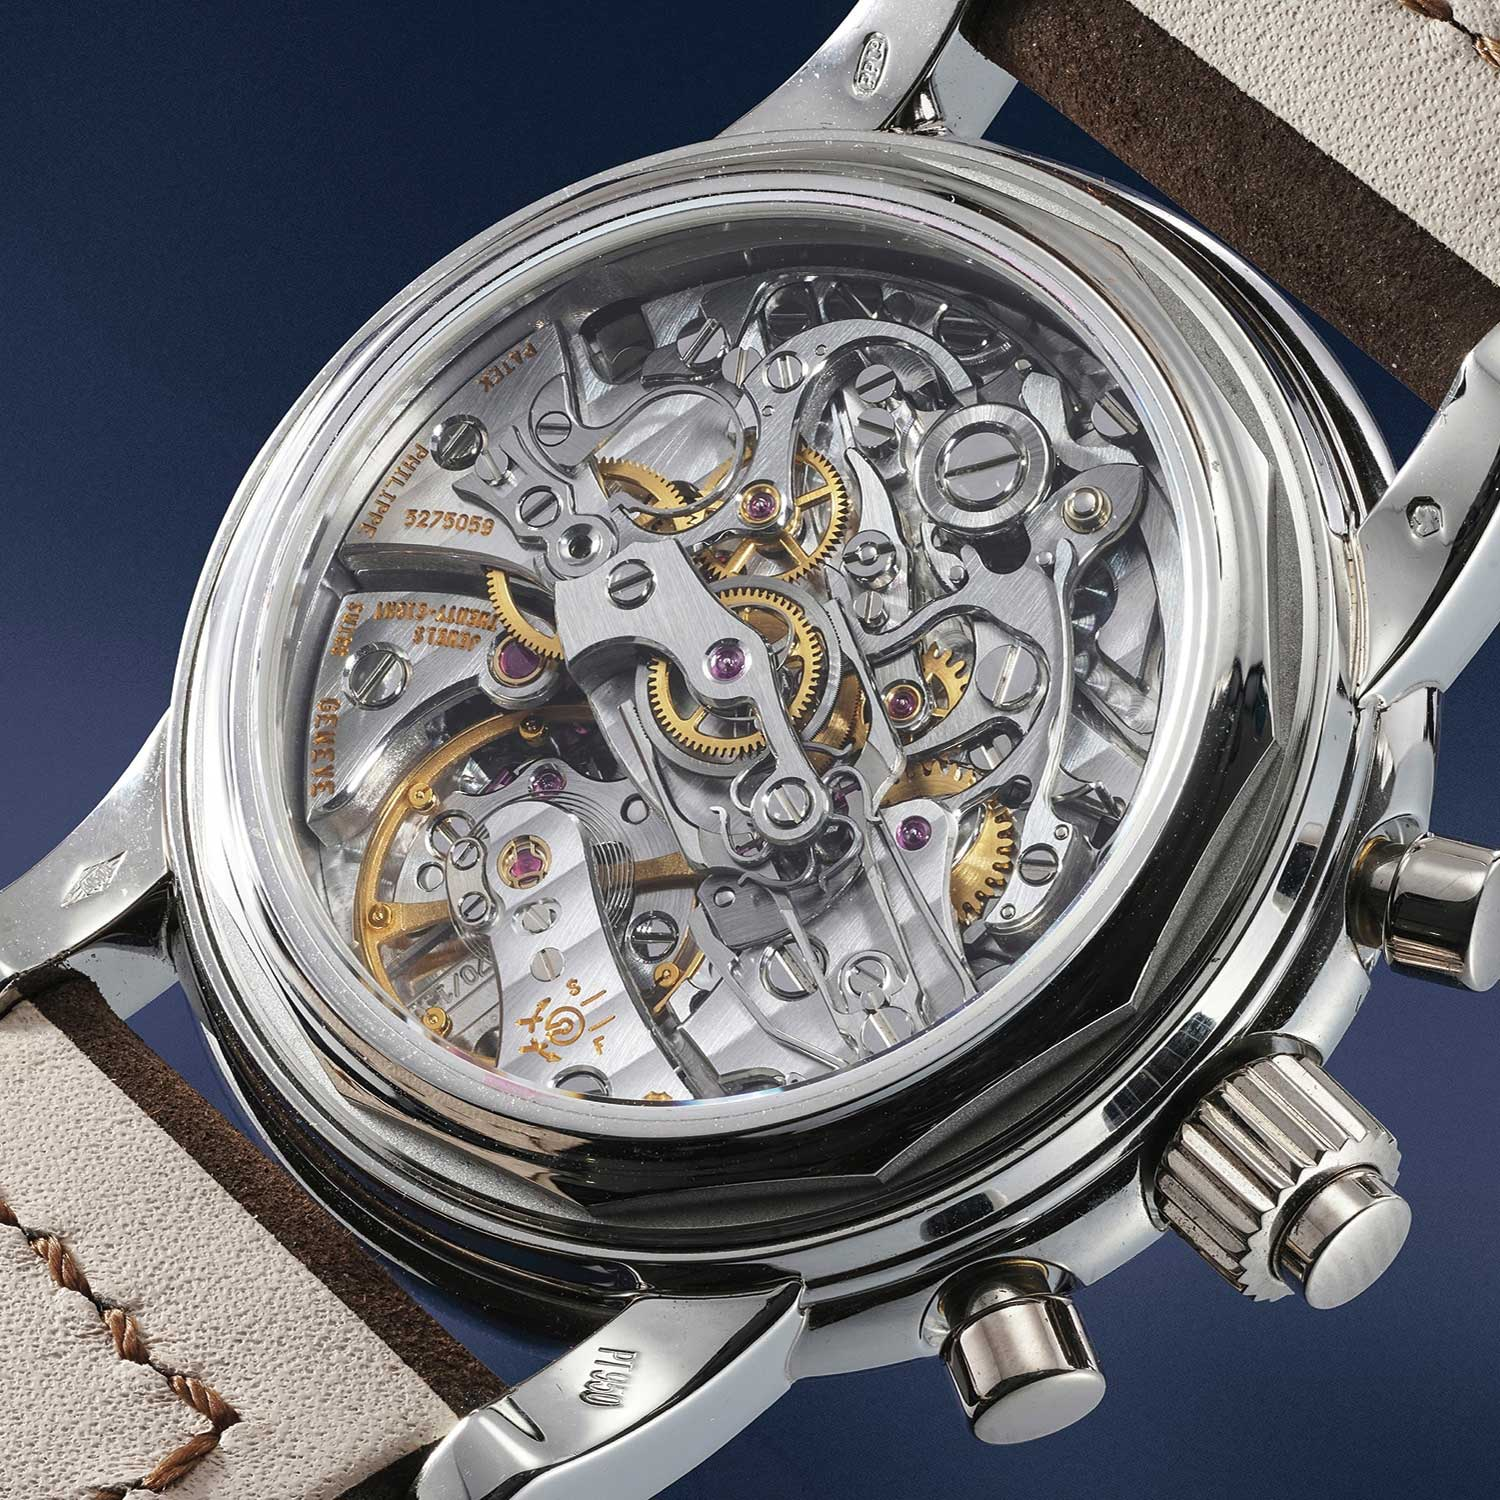 Caseback view of the Patek Philippe ref. 5004P showcasing the CHR27-70Q powering this monumental piece of watchmaking mastery (Image: Phillips.com)